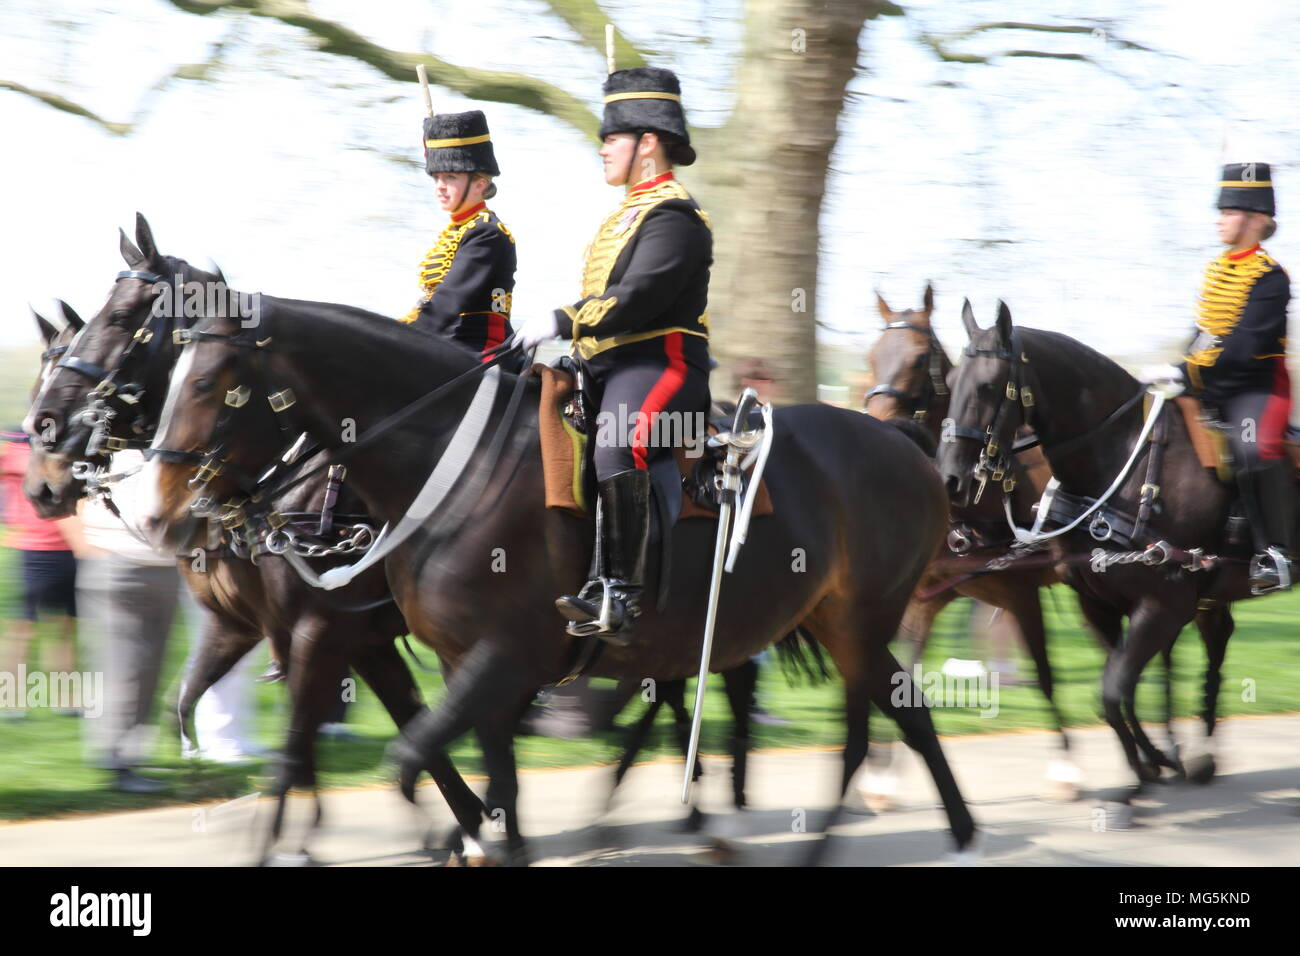 The Household Cavalry, celebrating the Queen's 92nd birthday in Hyde Park, London, UK Stock Photo